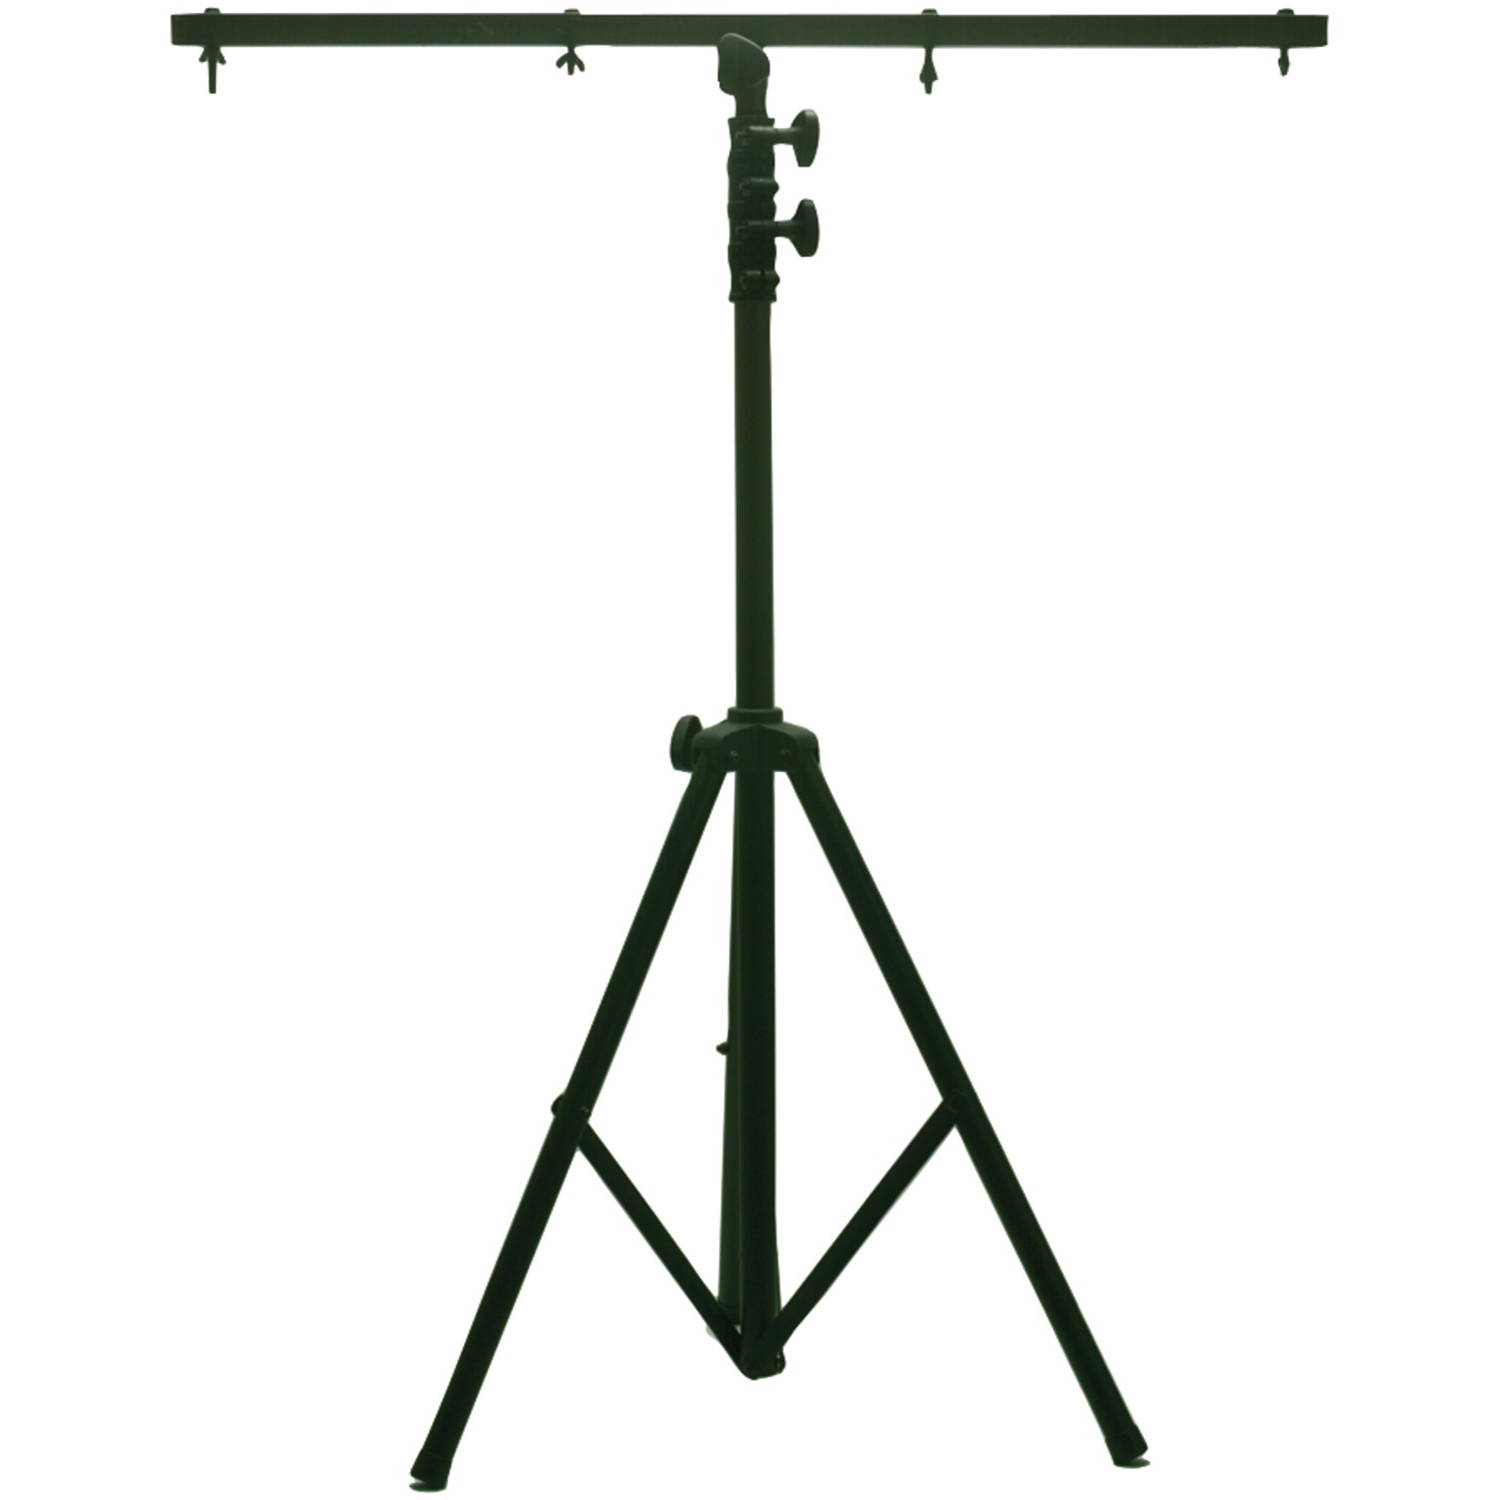 Eliminator Lighting E132 9' Tri-32 Light Stand by Eliminator Lighting